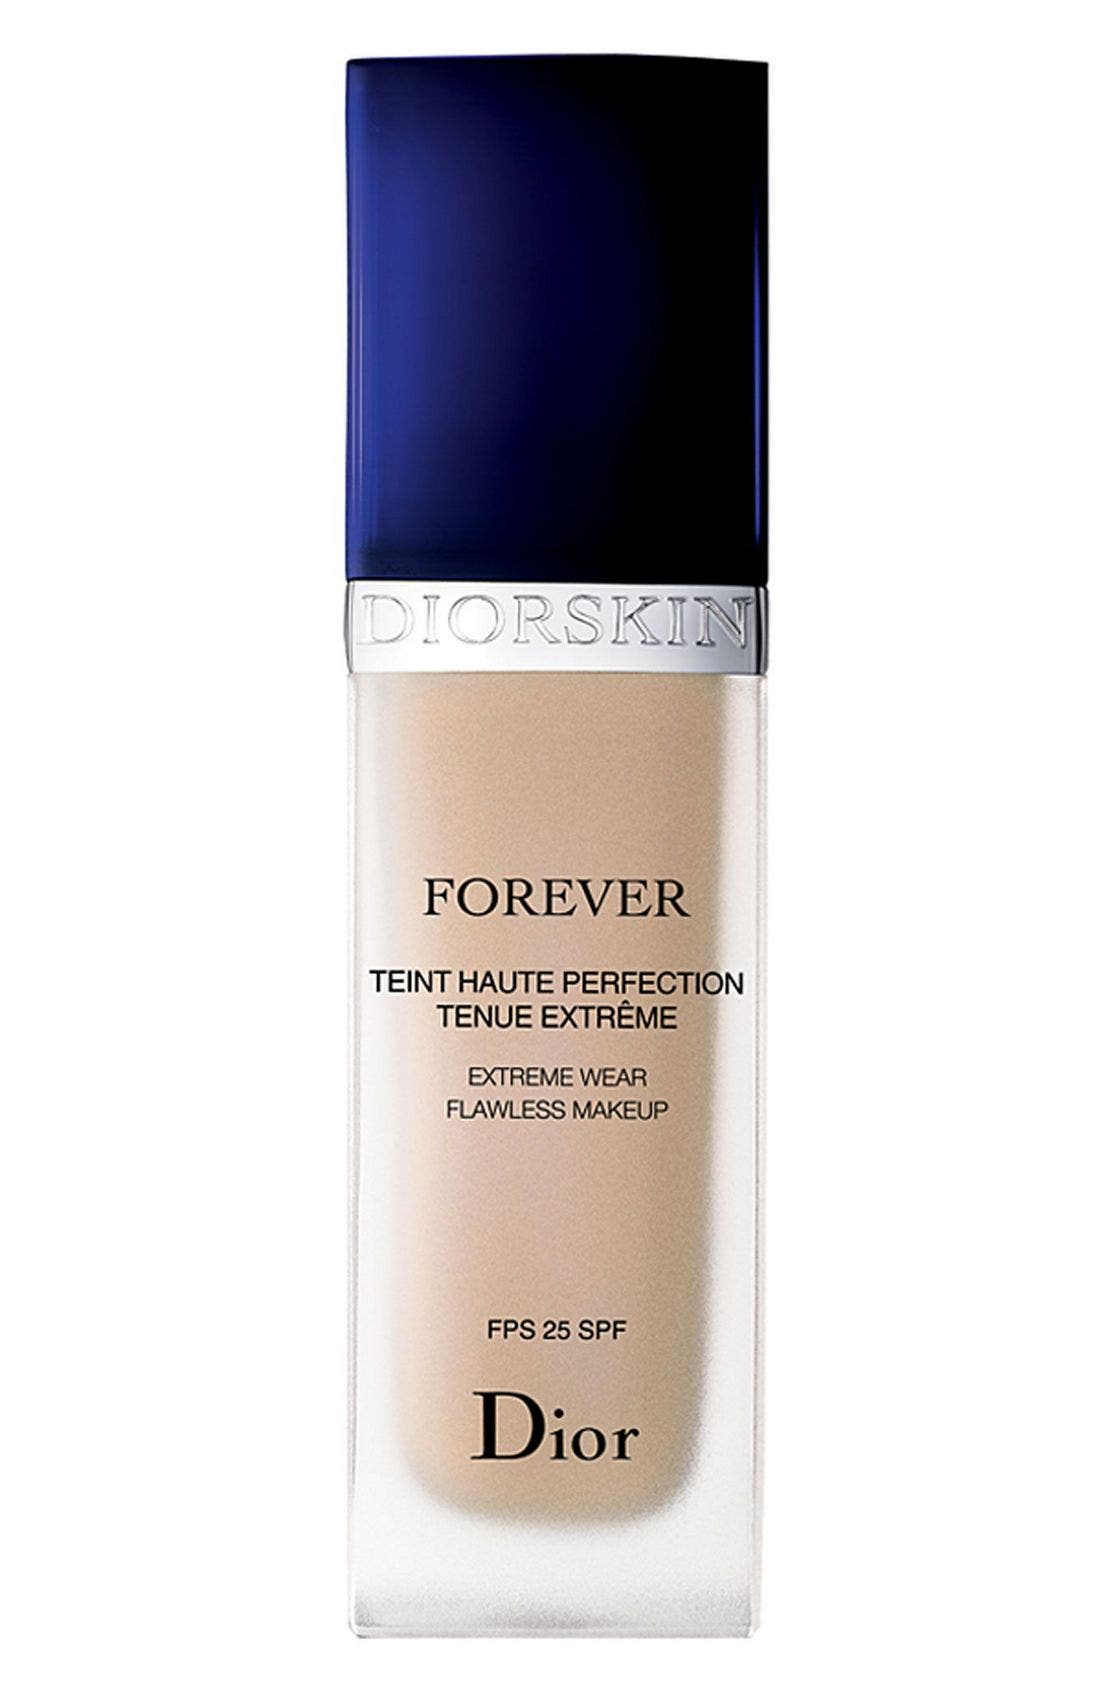 DIOR, 'Diorskin Forever' Extreme Wear Flawless Makeup SPF 25, Main thumbnail 1, color, 000